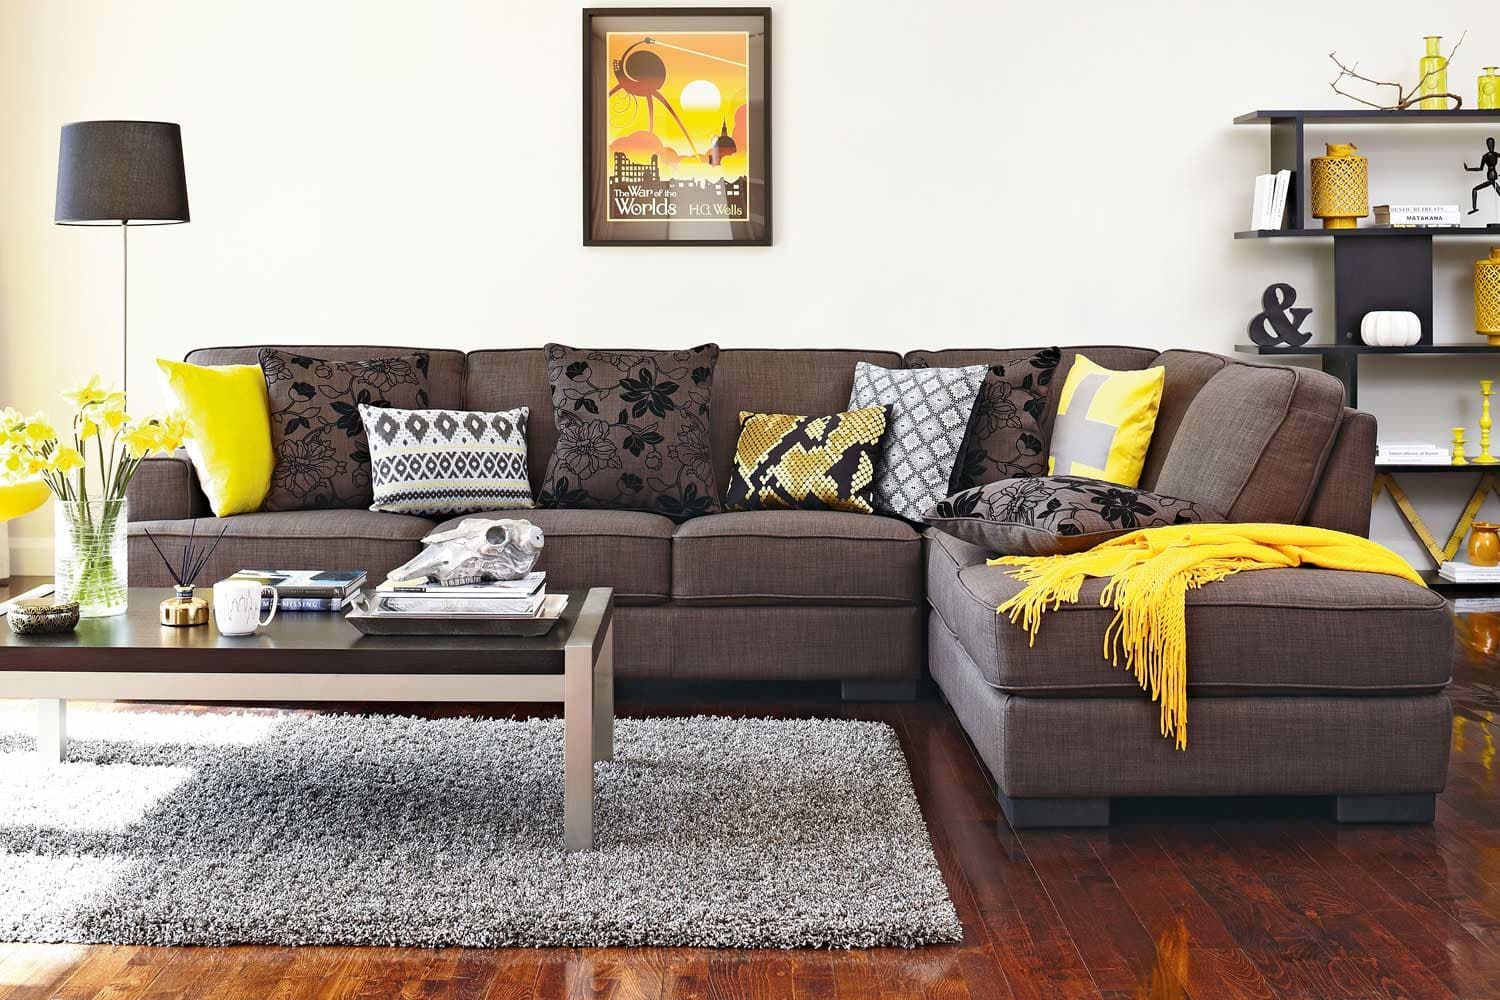 Slate 4 Seater Fabric Corner Lounge Suite | Lounge suites, Slate and ...